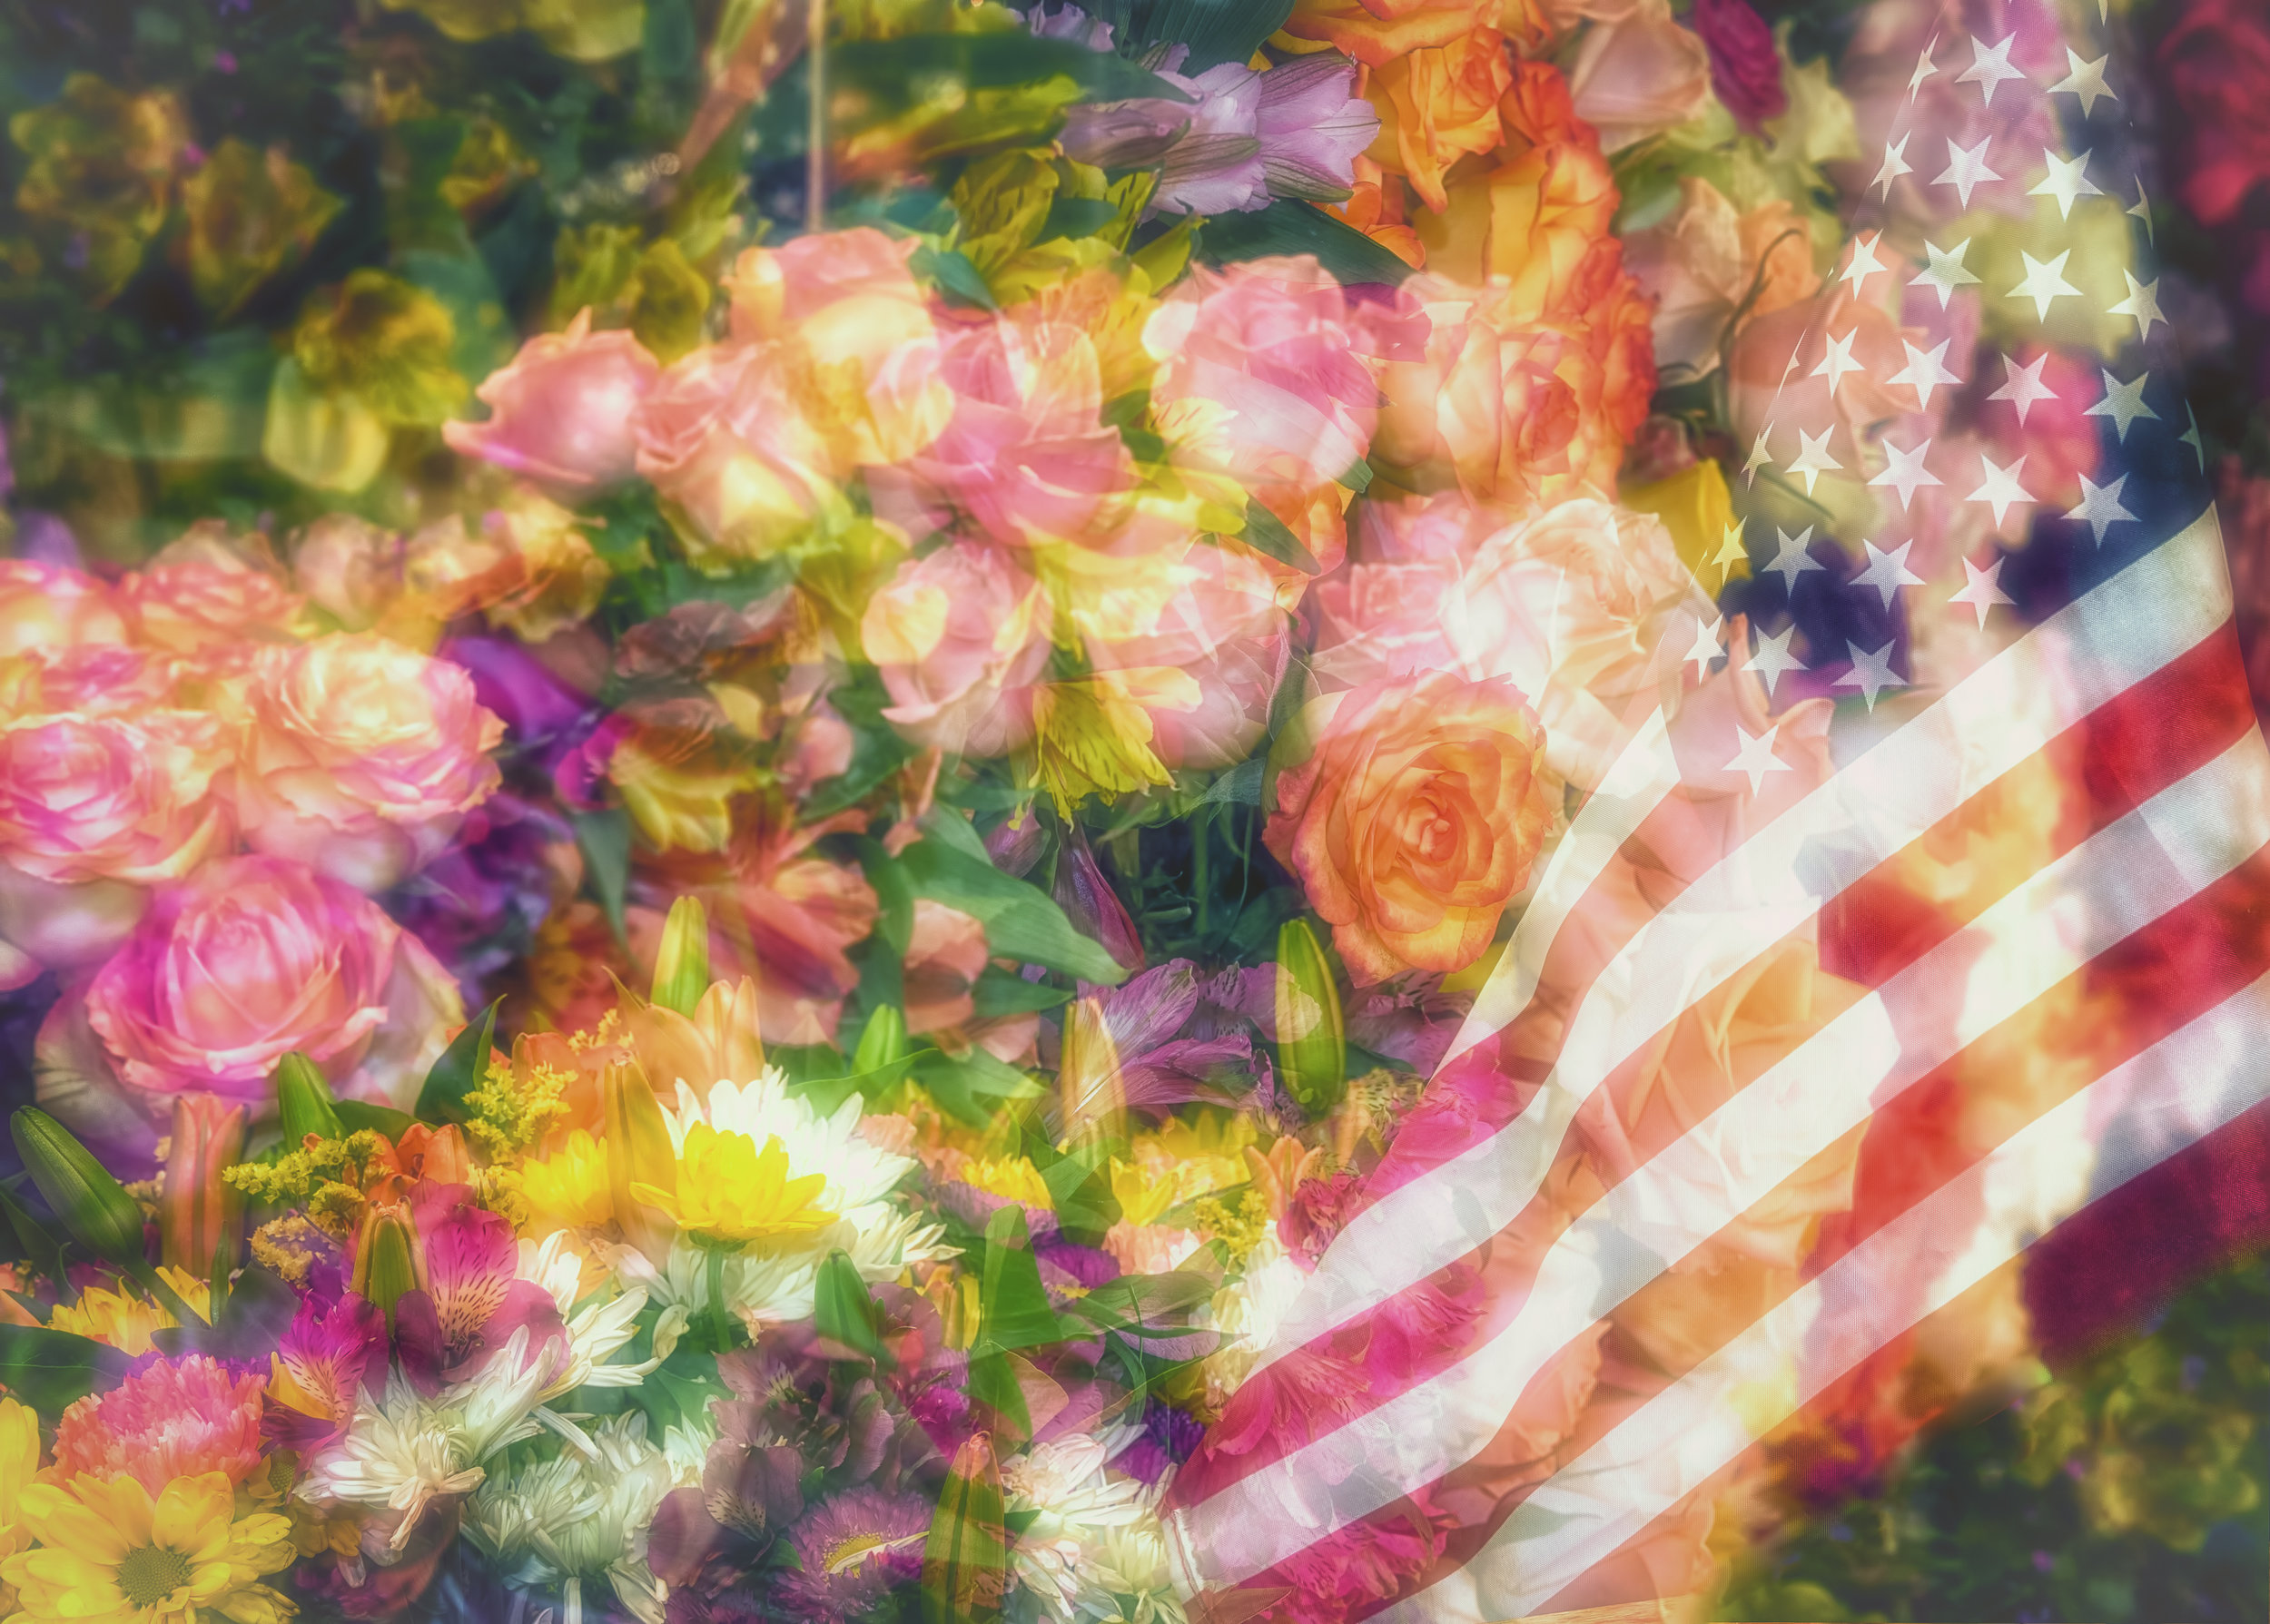 The flag on a bed of roses. Very much the idealized, romantic and preferred image of ourselves. I am writing on the eve of this year's holiday, when the current occupant of the White House plans to co-opt the traditional celebration of our nation's independence for political purposes. Just another affront to our national character. I've stopped counting how many have preceded it. American Democracy is under siege in 2019. It also occurred to me that we bring flowers to funerals as well.